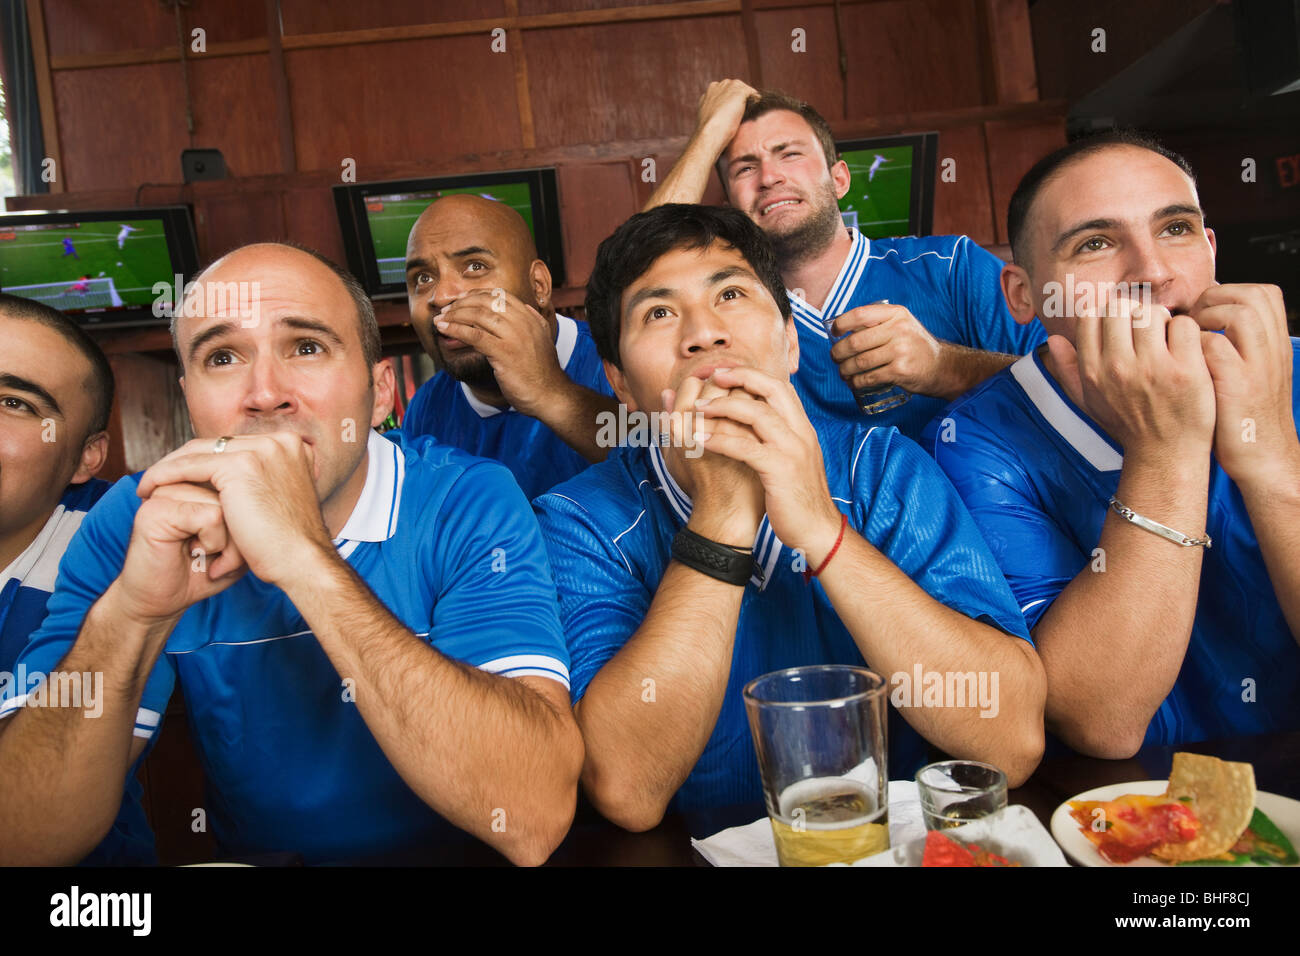 Worried teammates watching television in sports bar Stock Photo